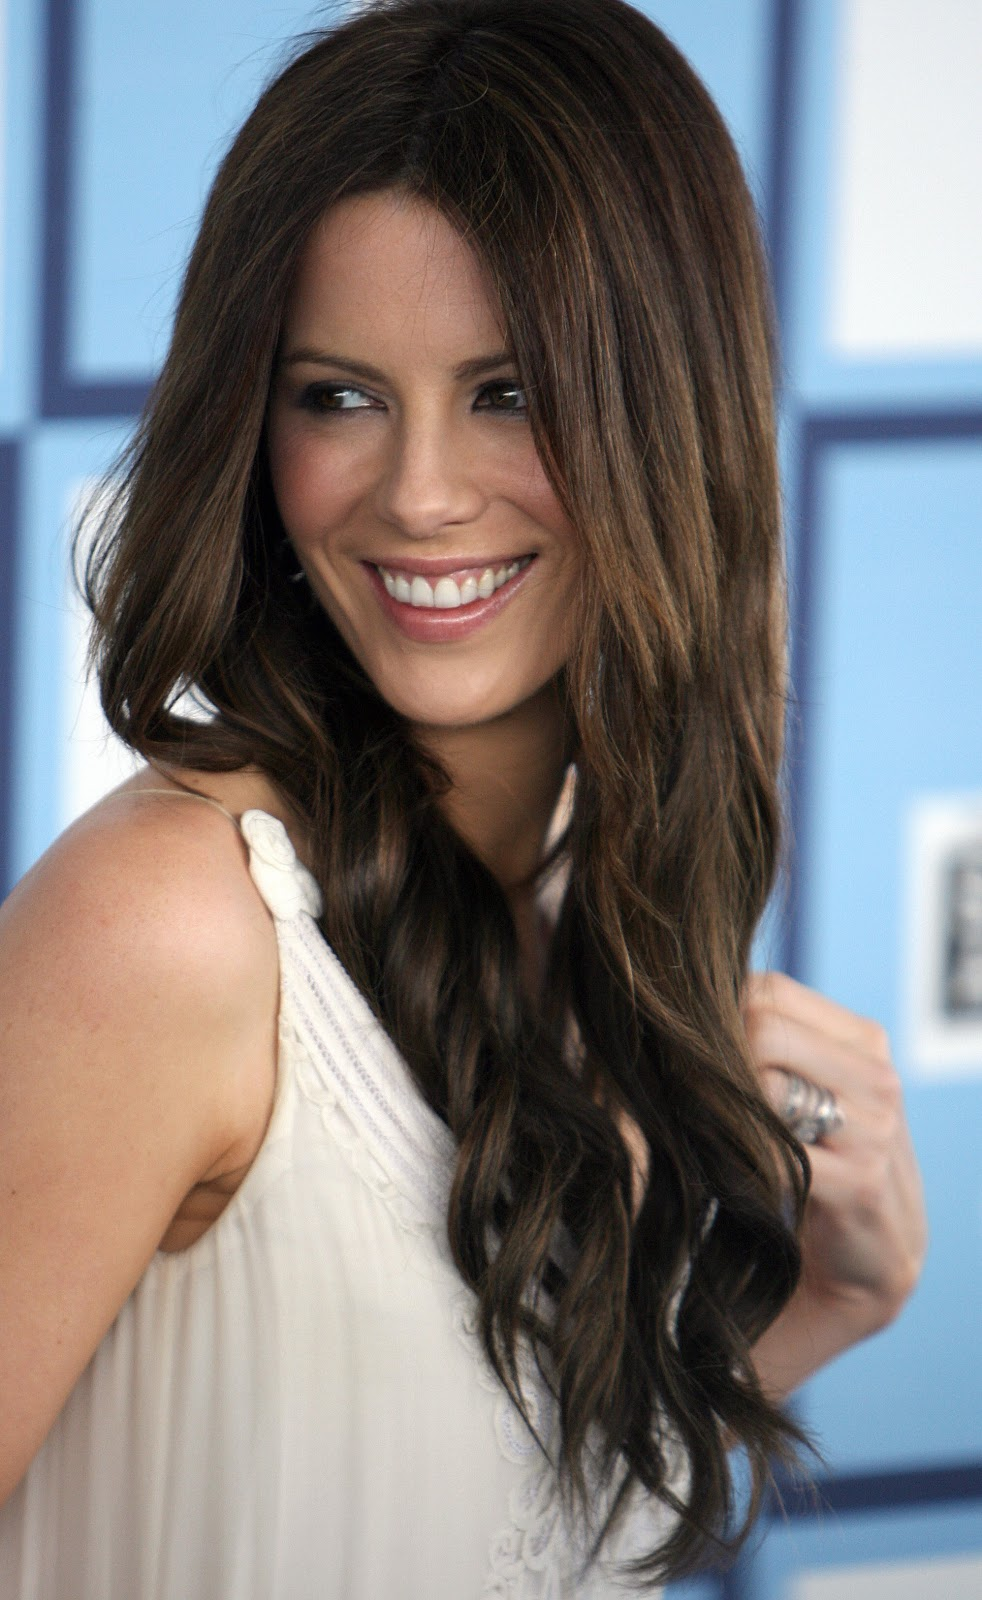 Kate Beckinsale pictures gallery 4  Film Actresses